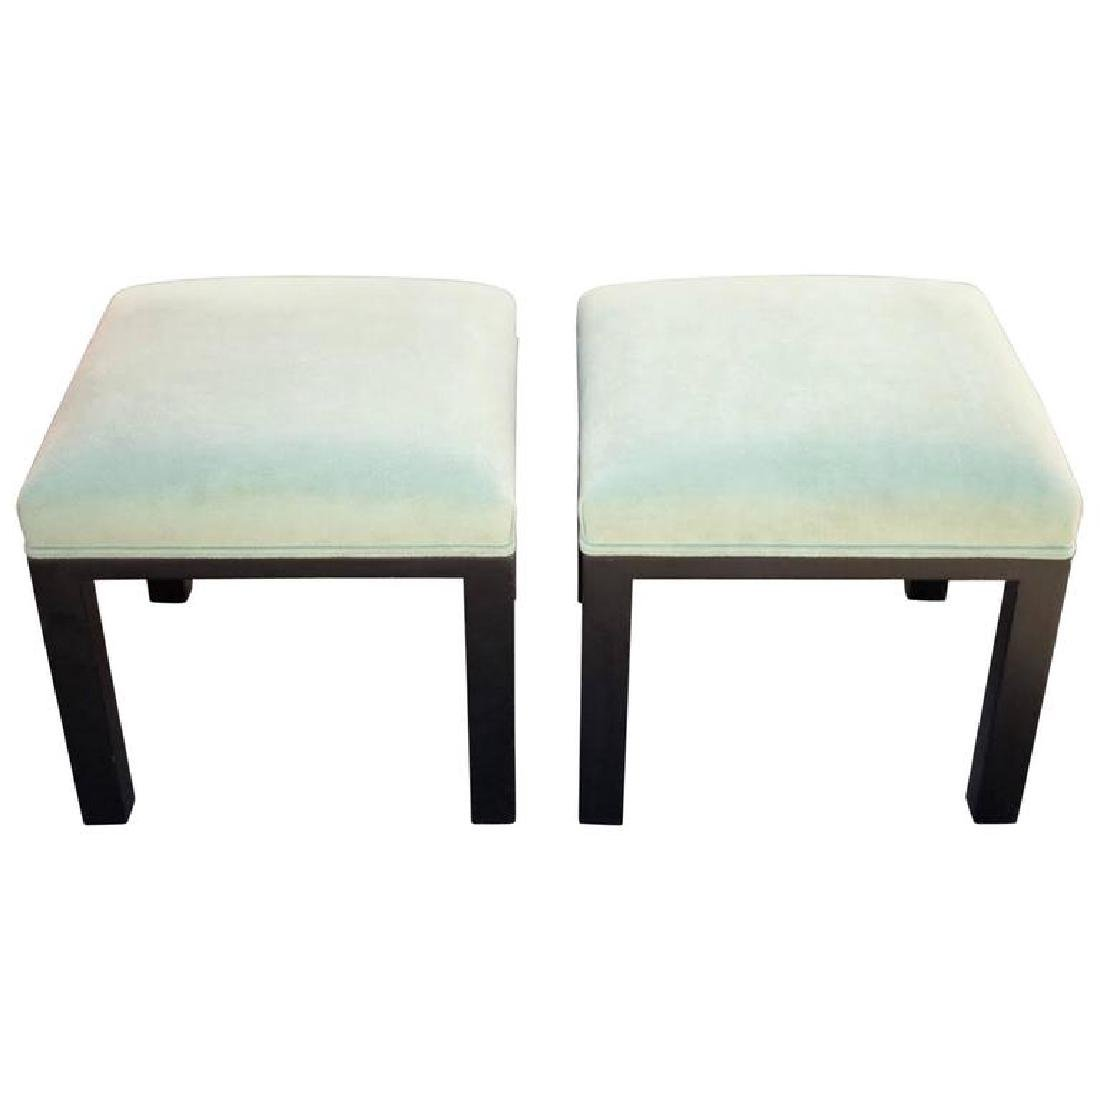 Light Green Ottoman or Stools by Michael Taylor